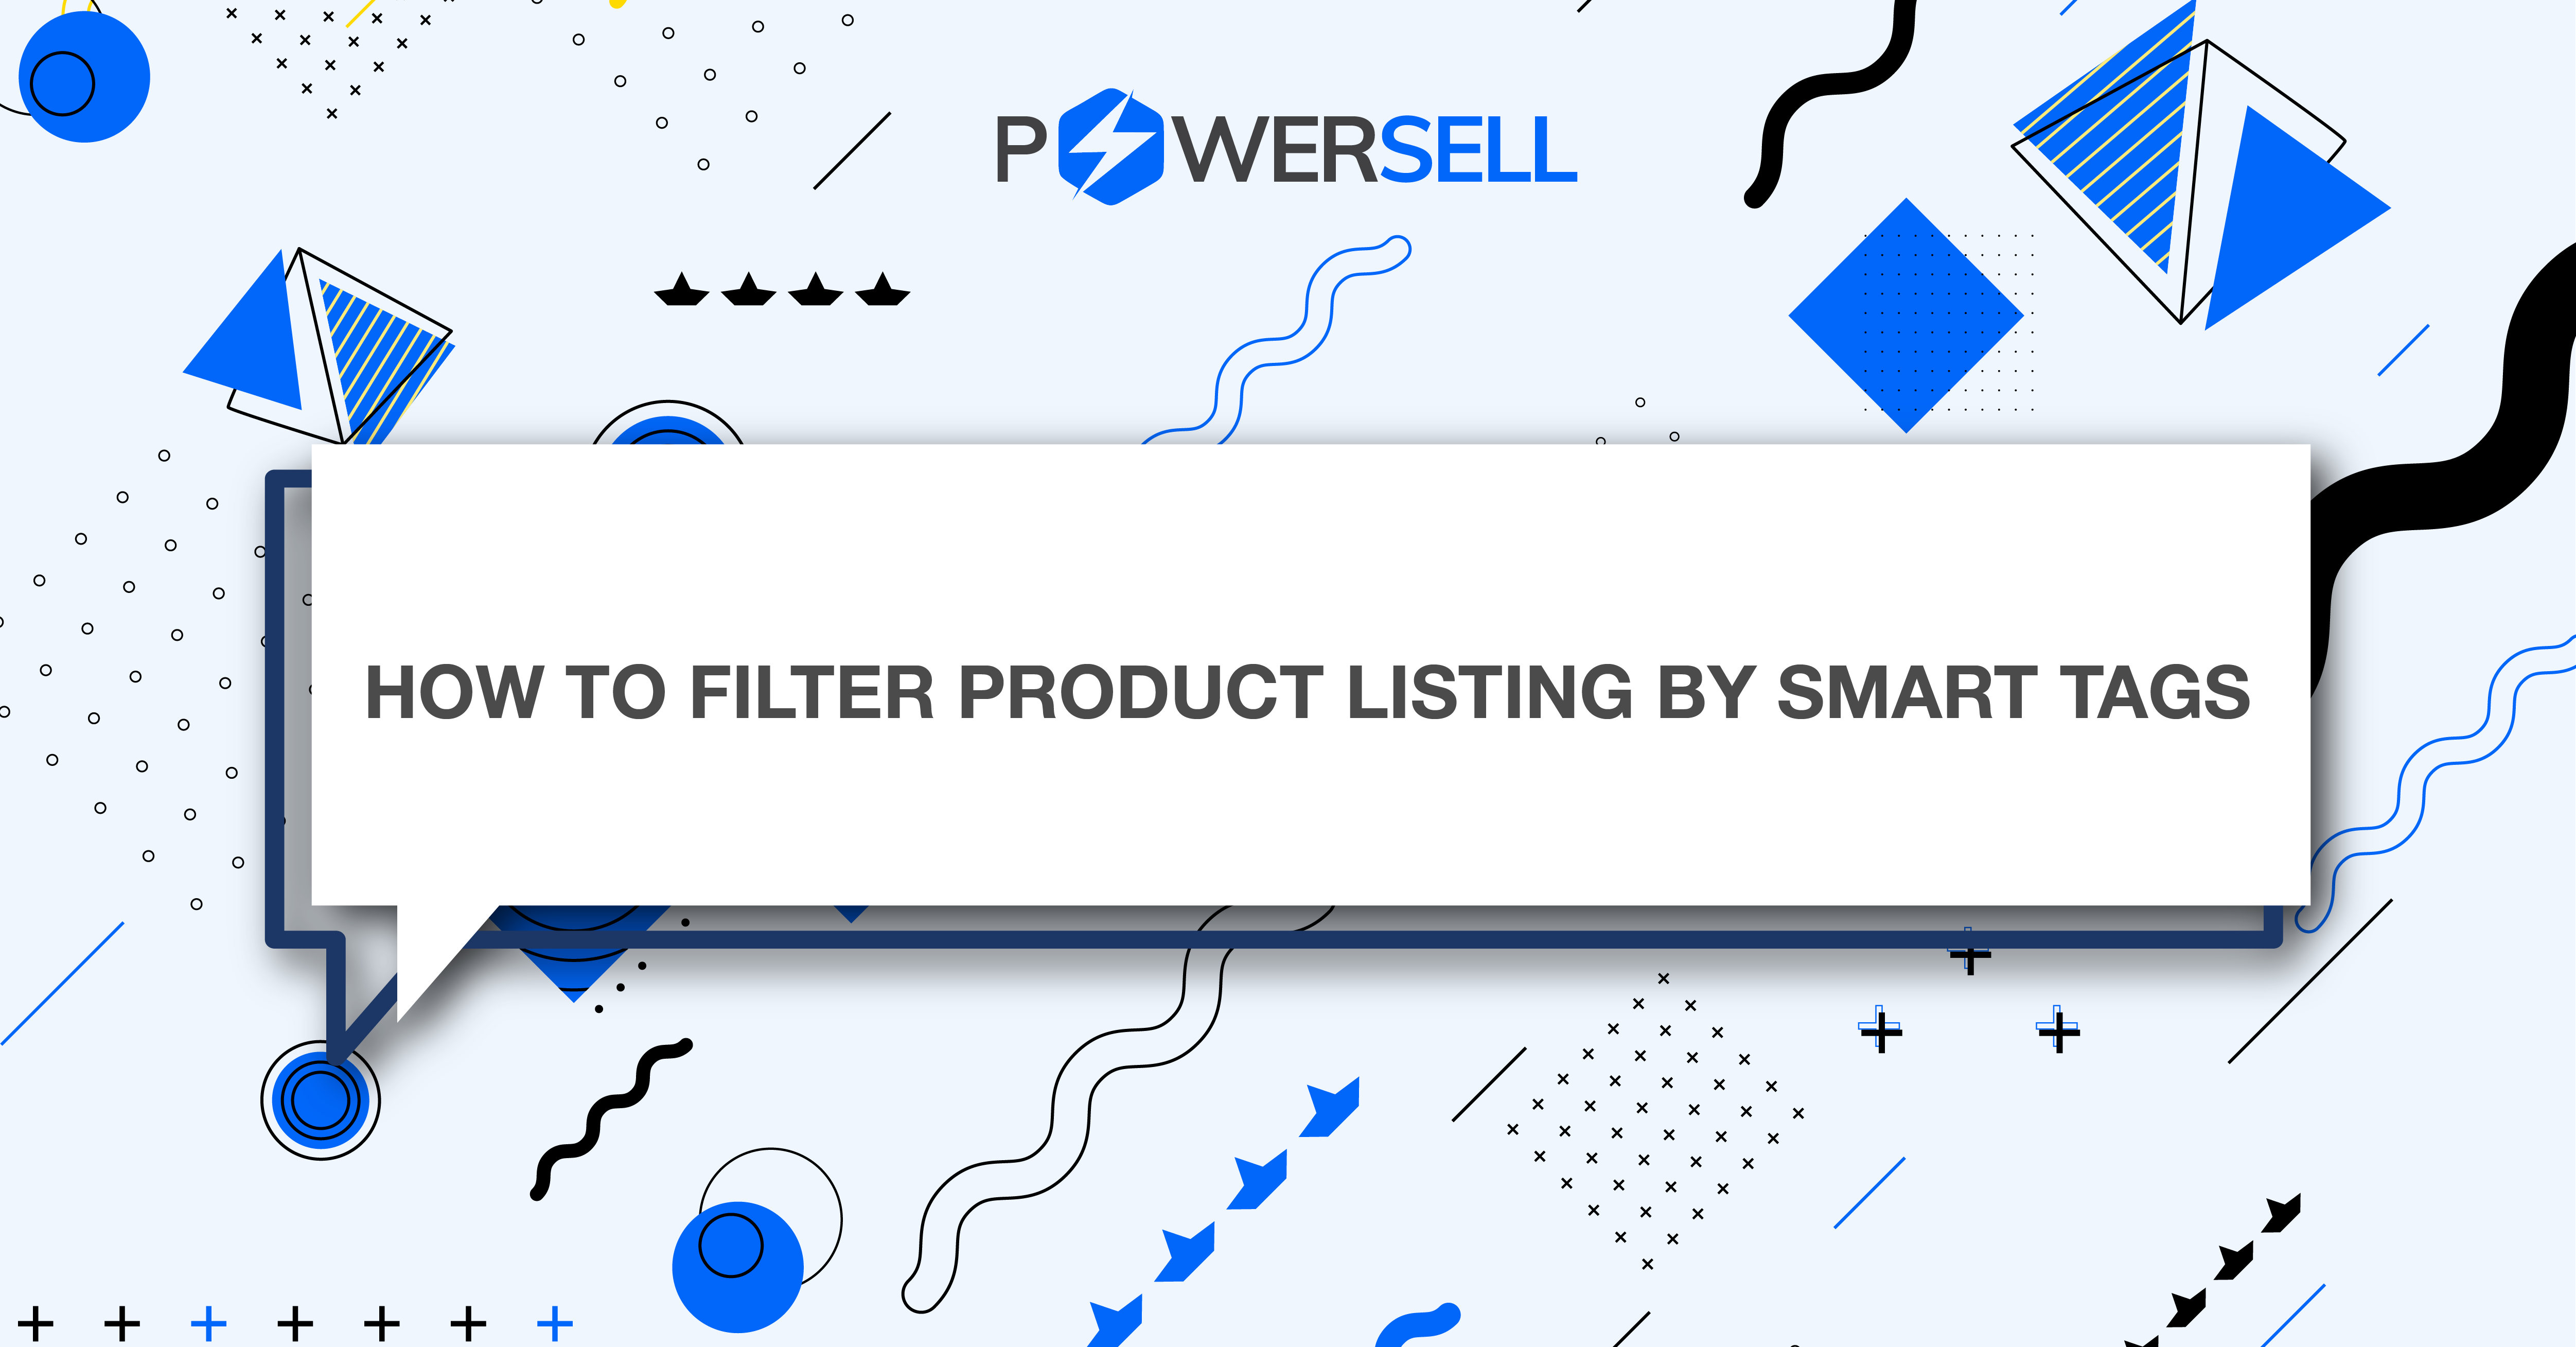 How to filter product listing by smart tags